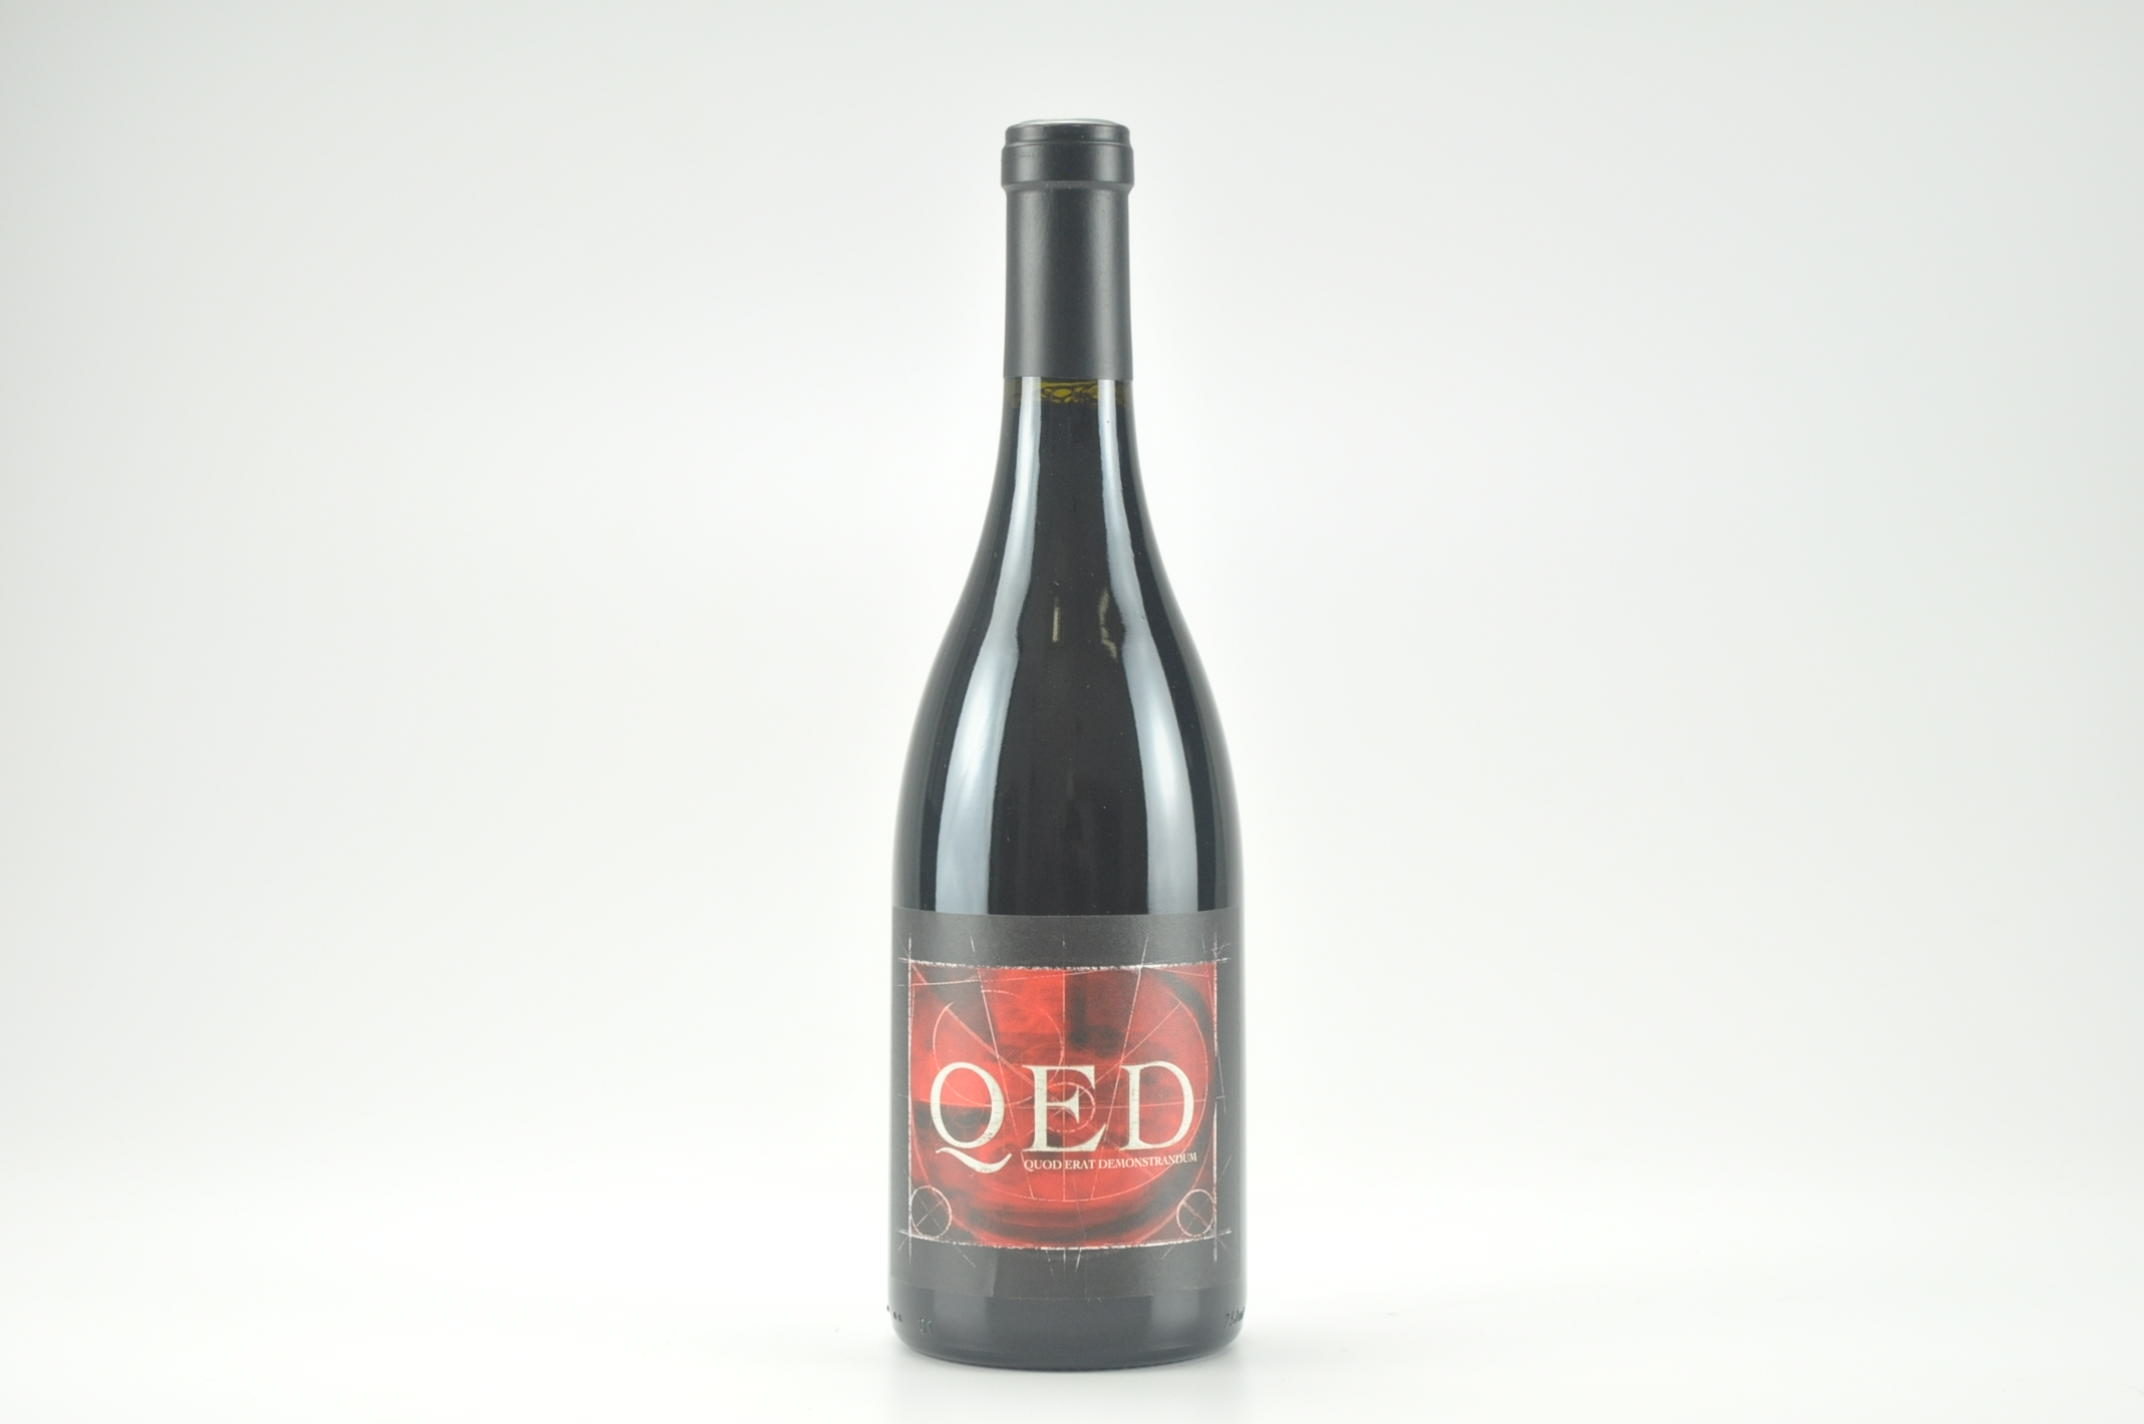 2010 Rasa Vineyards Qed, Walla Walla Valley RP--93